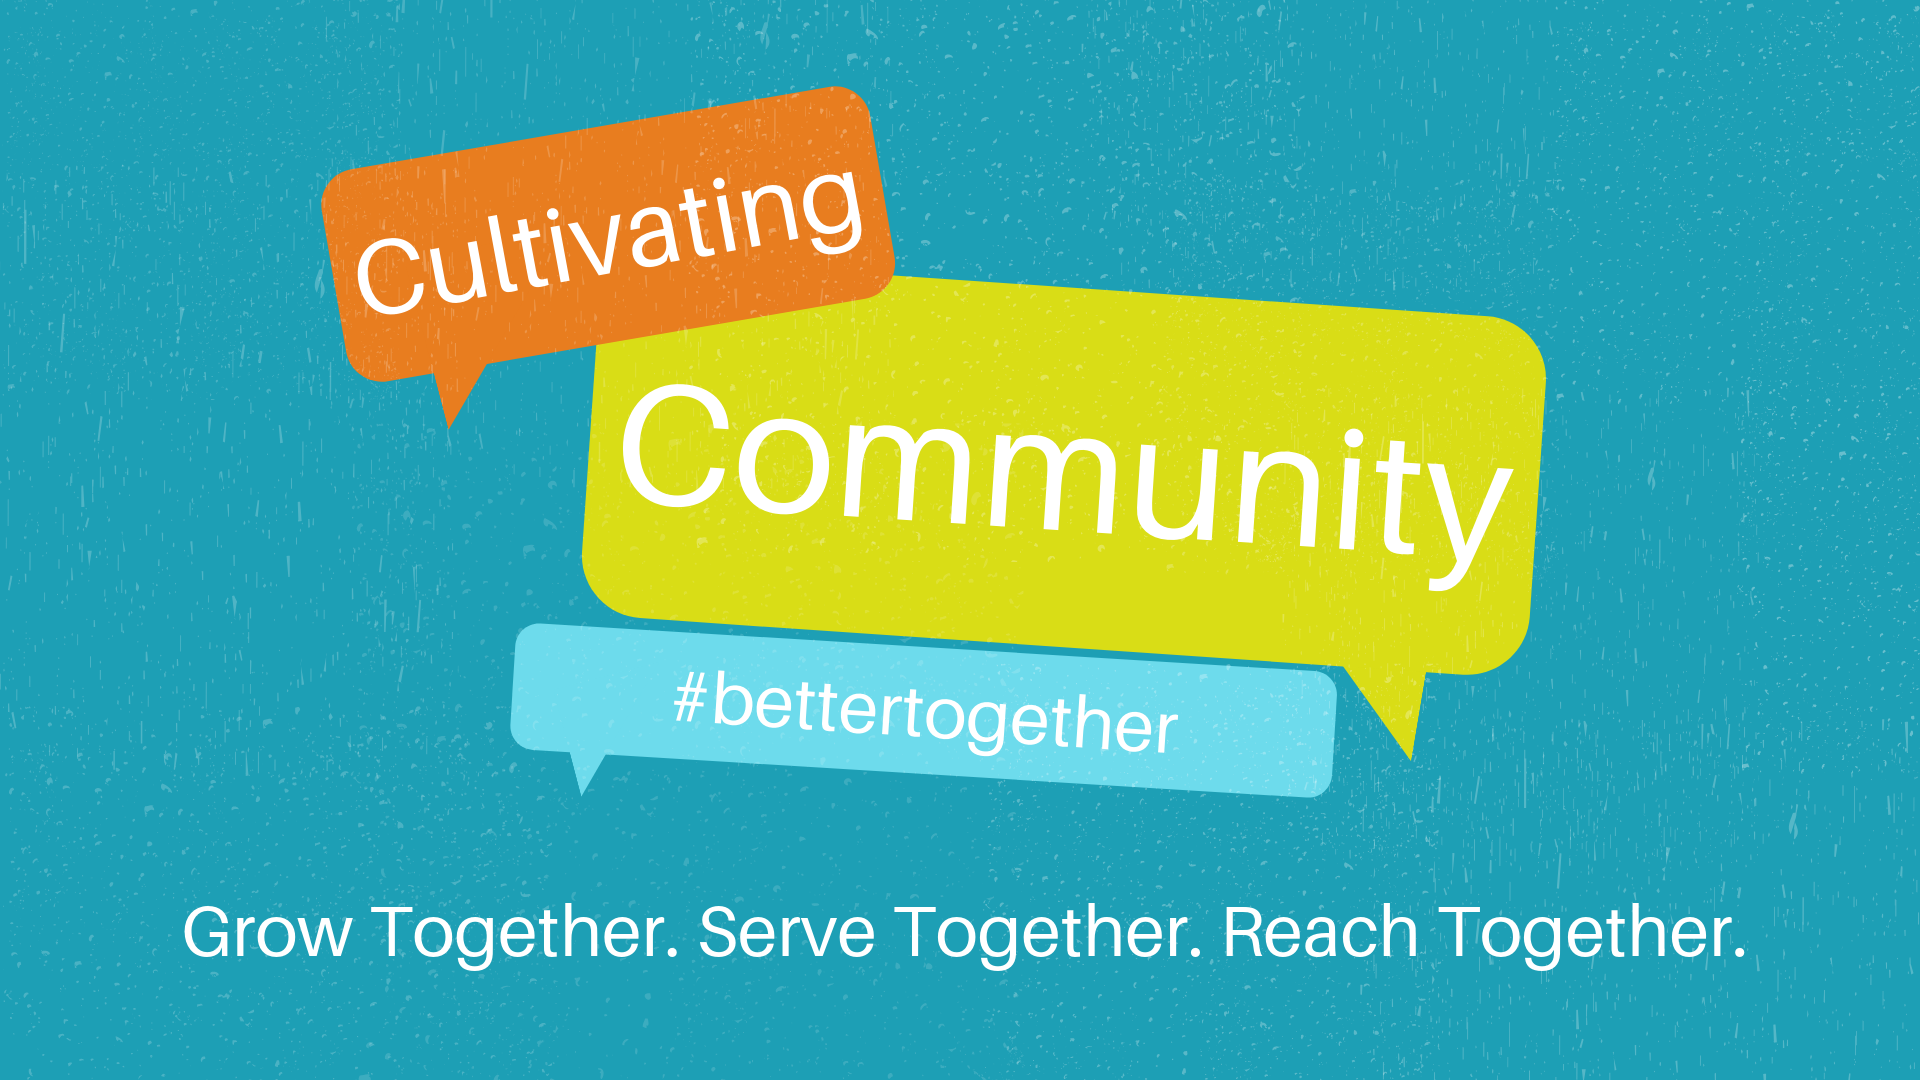 Cultivating-Community